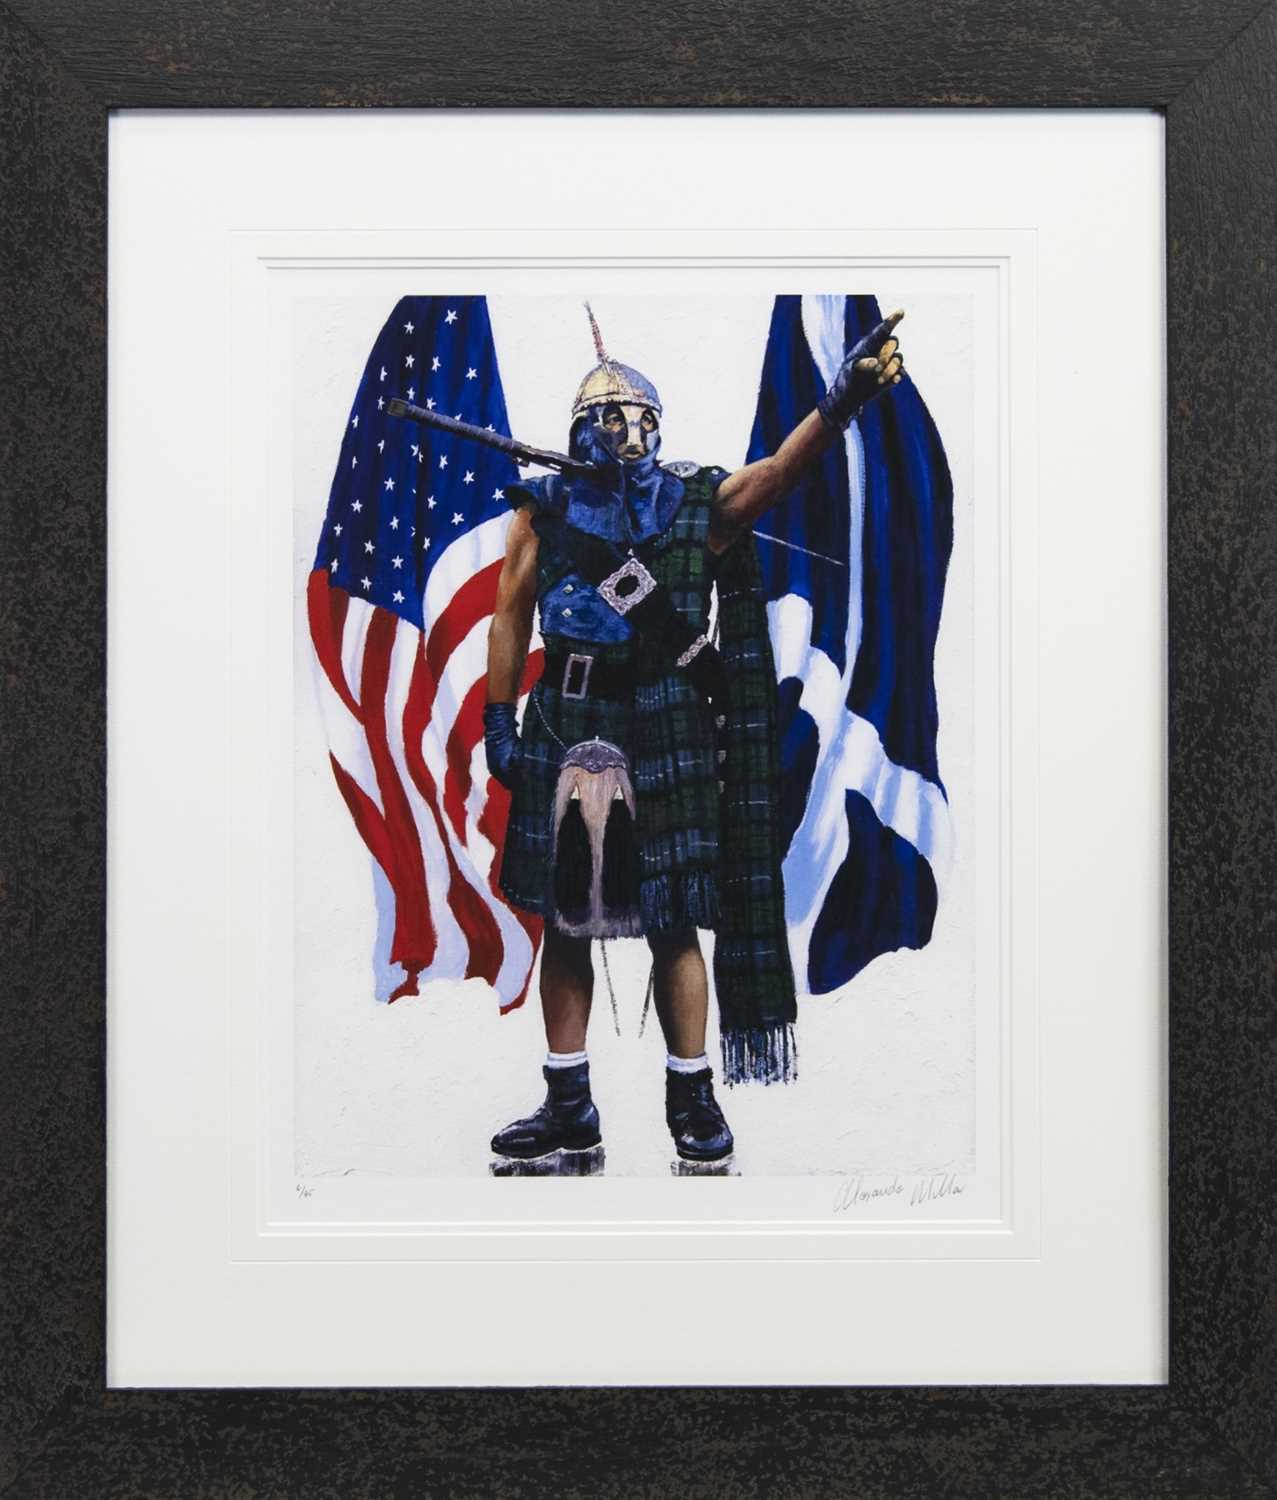 Lot 105 - OVER THE SEAS, A GICLEE PRINT BY ALEXANDER MILLAR